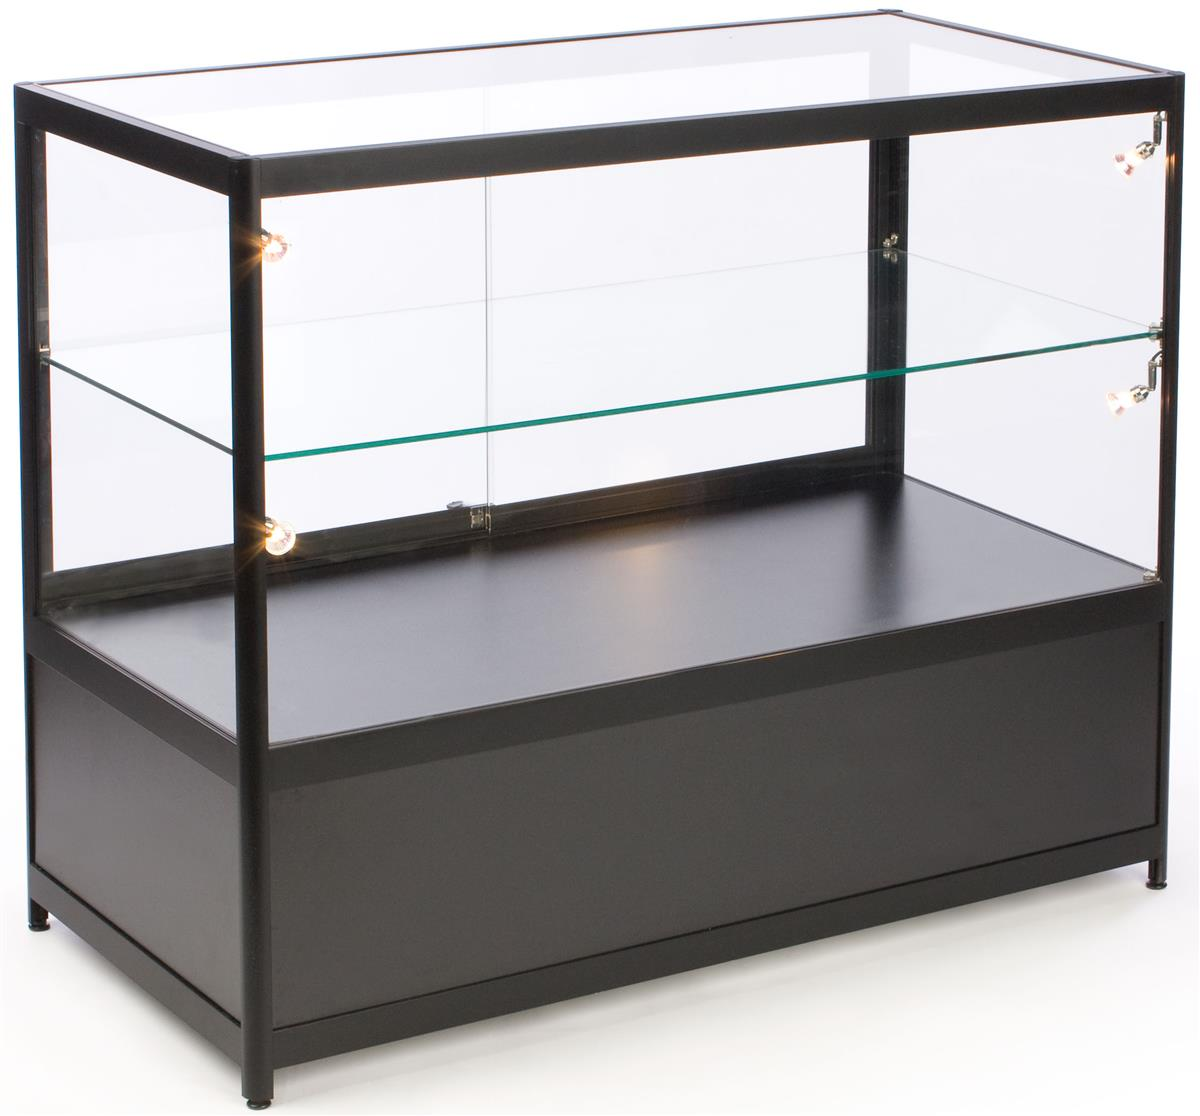 Glass Display Cabinets Perth Glass Counter Locking Storage Base W Black Lights